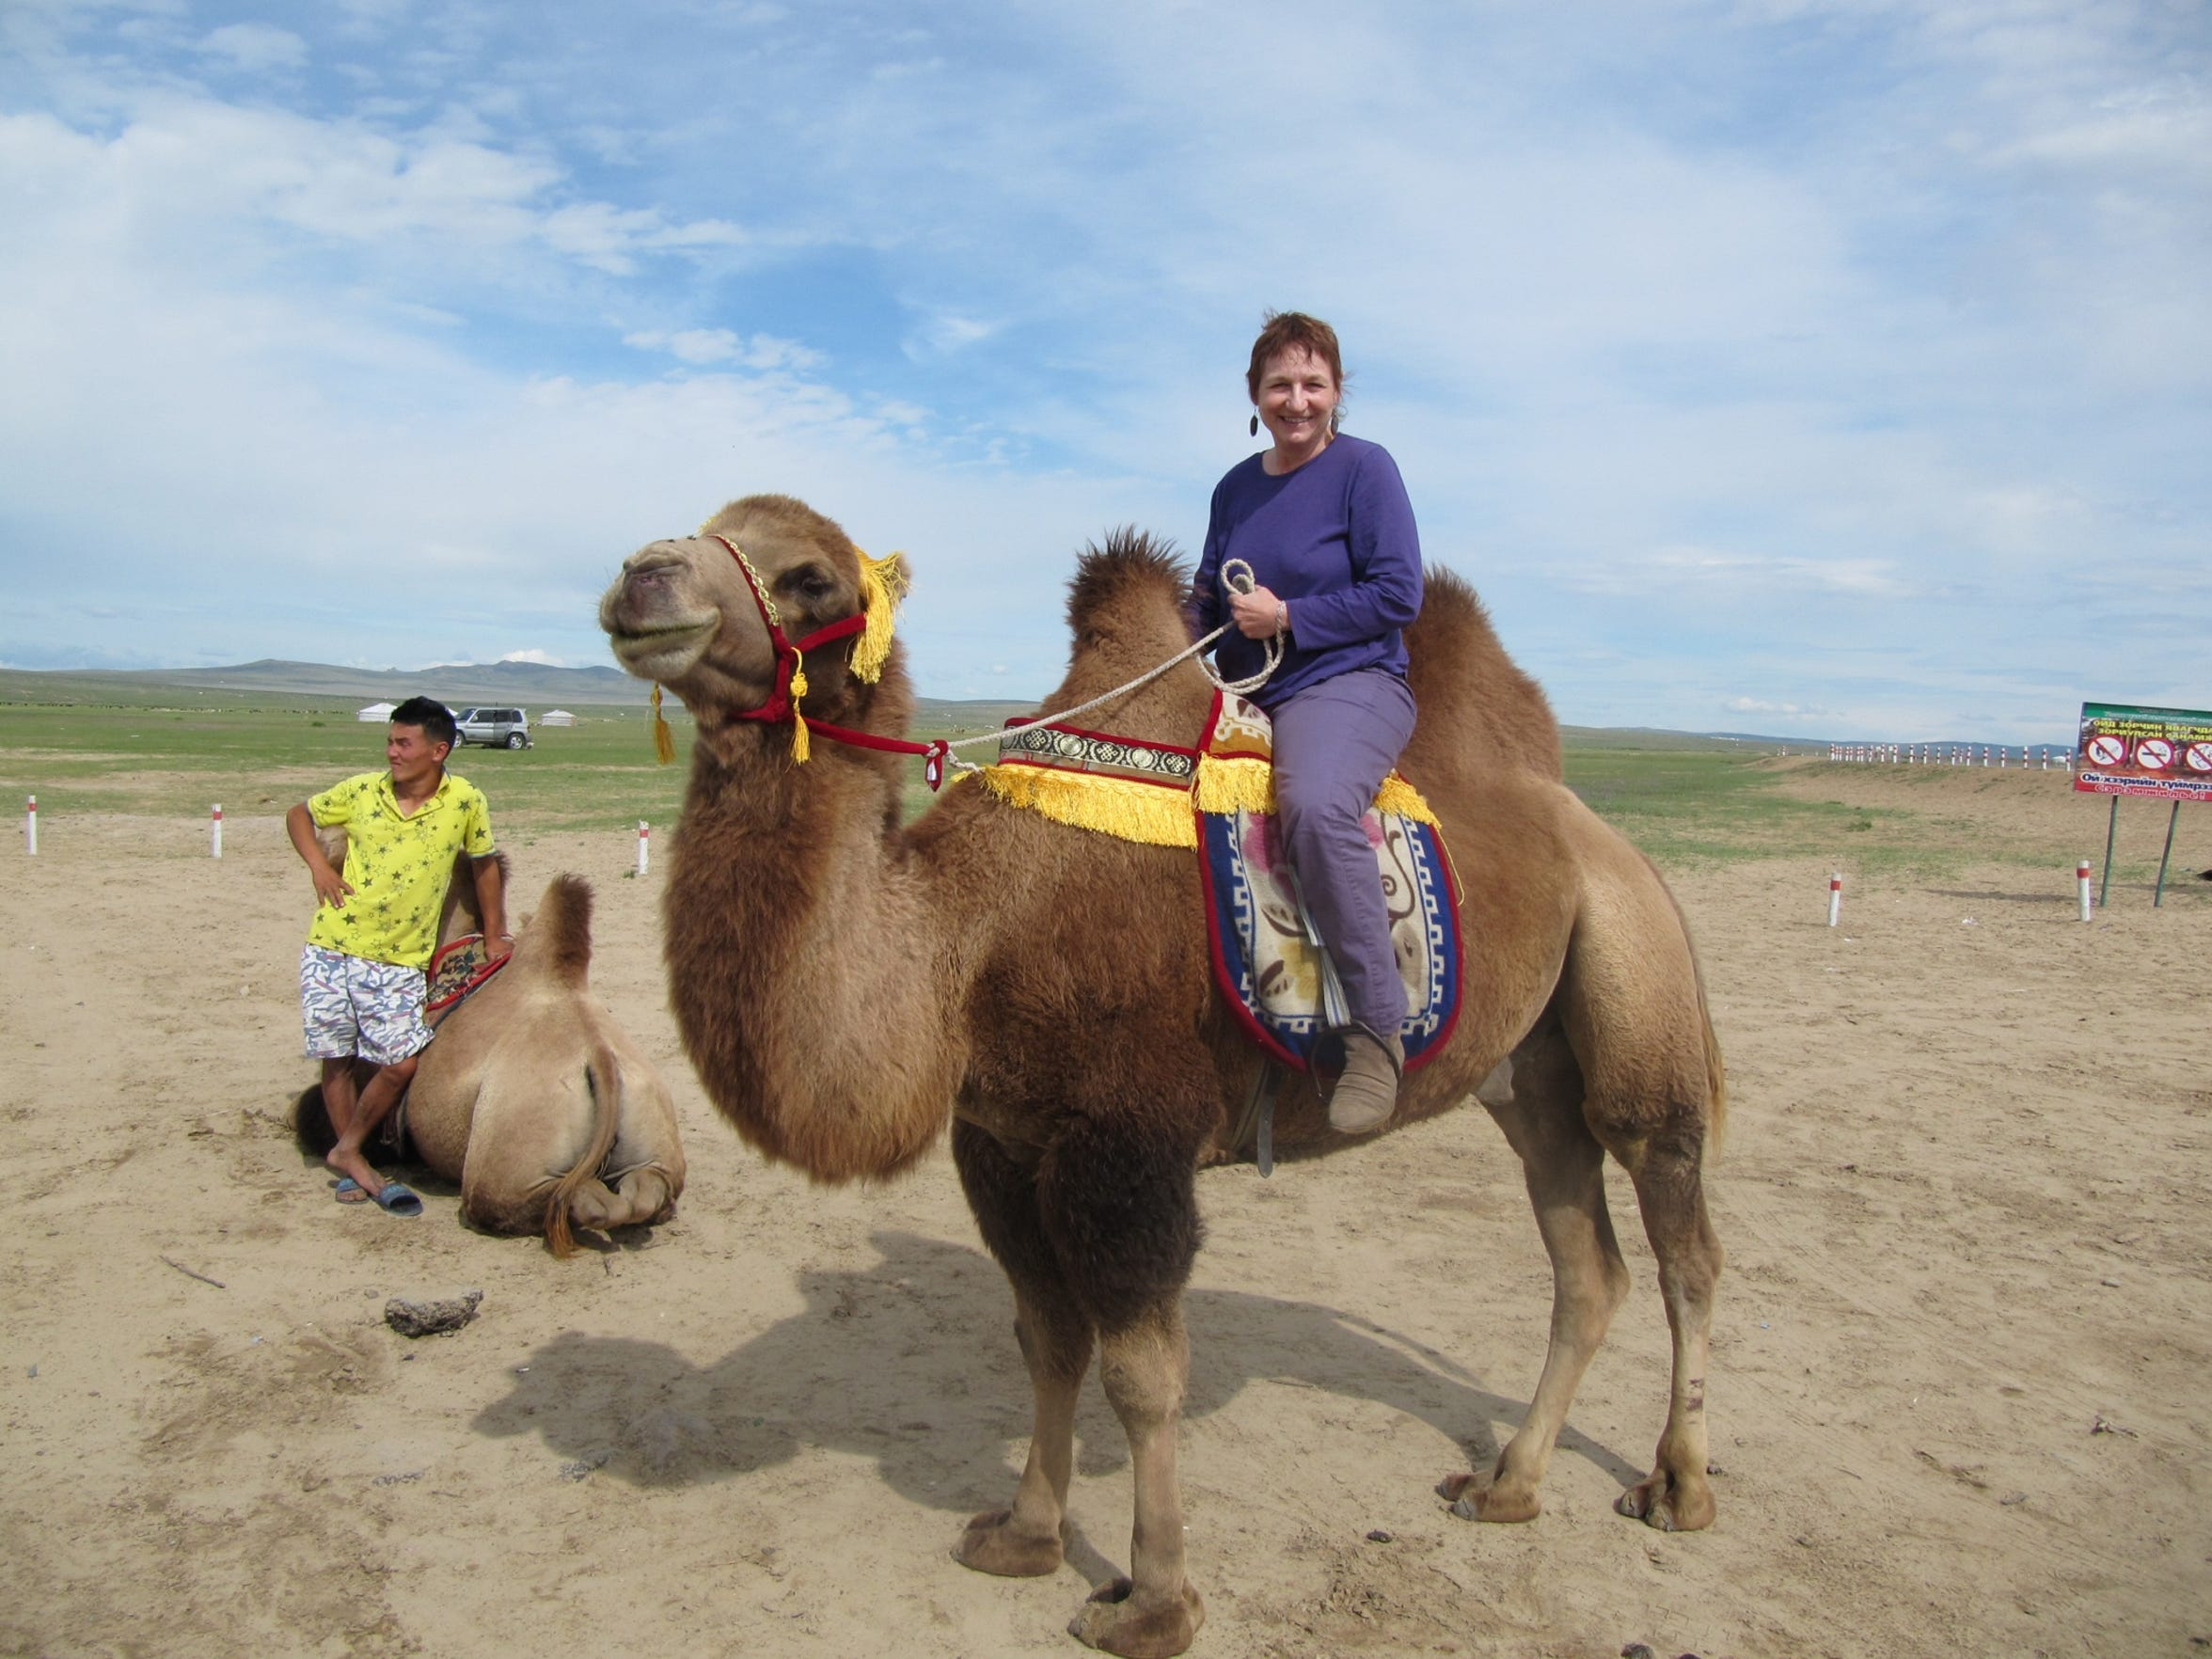 Lisa Jacenich riding a camel in Mongolia, Aug. 2012.